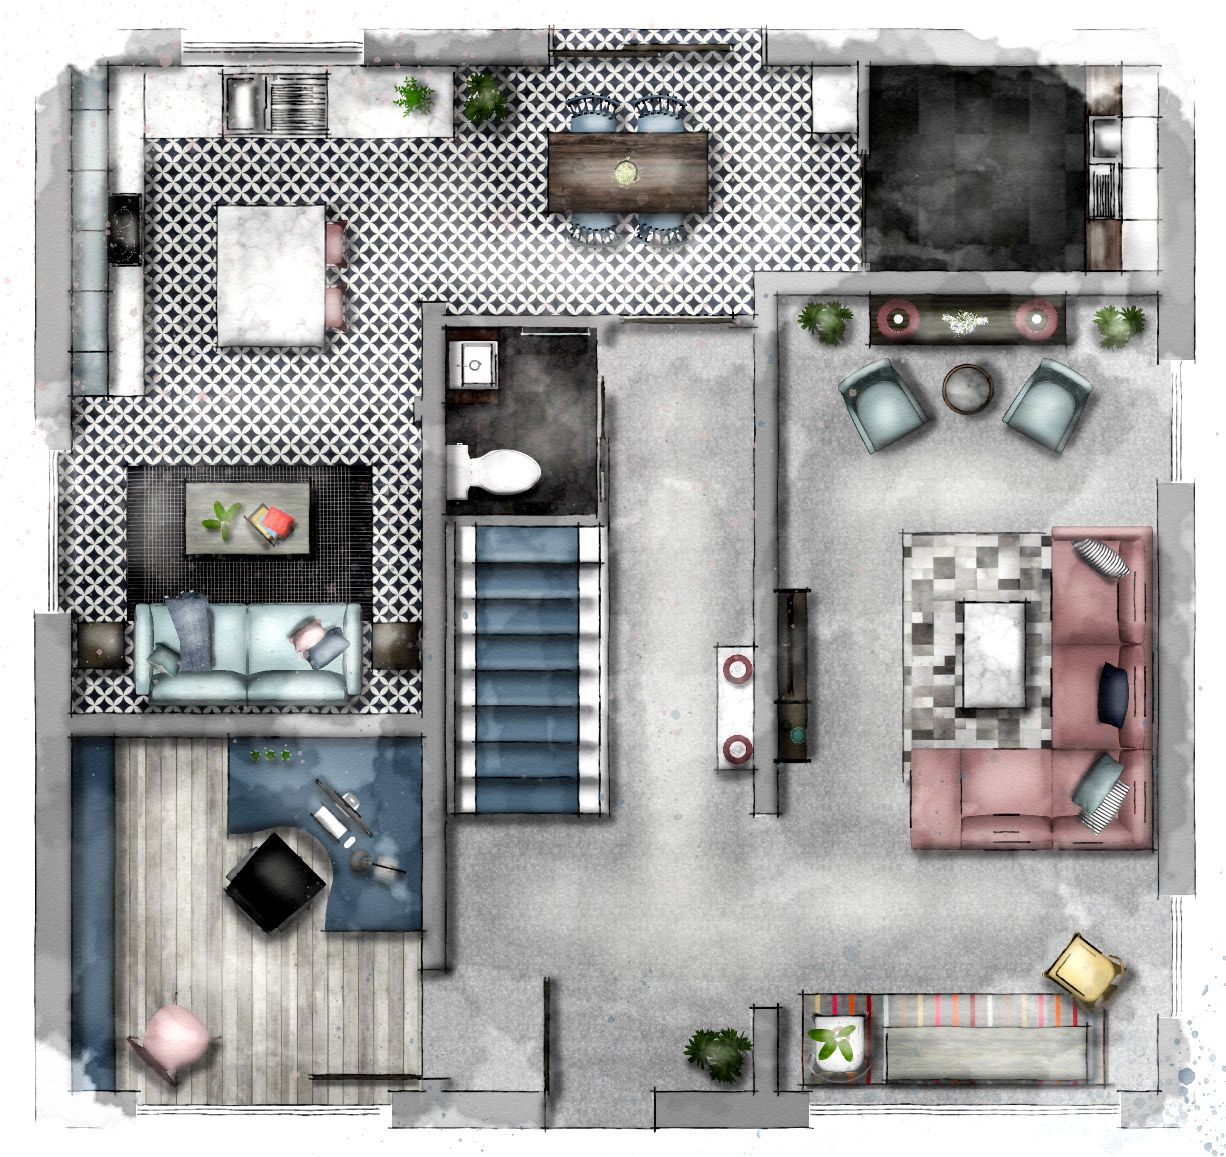 7 Rendering Floor Plans Elevations Interior Design Sketches